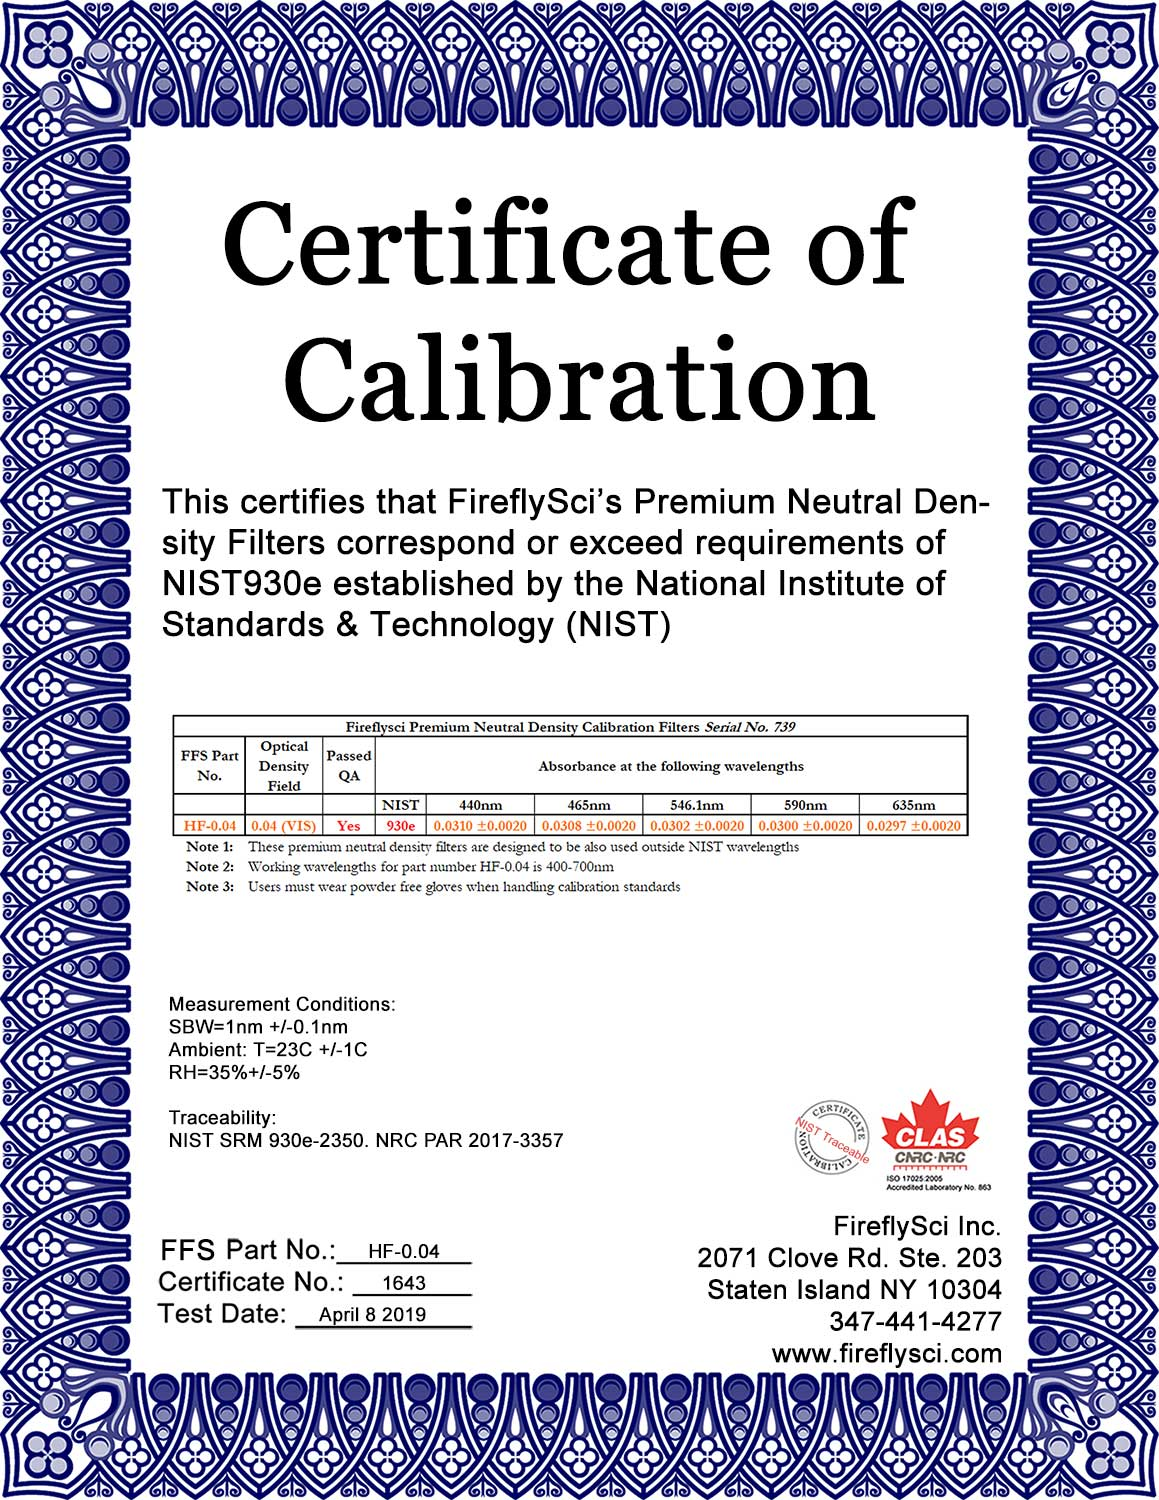 HF-0.04 sample certificate of calibration